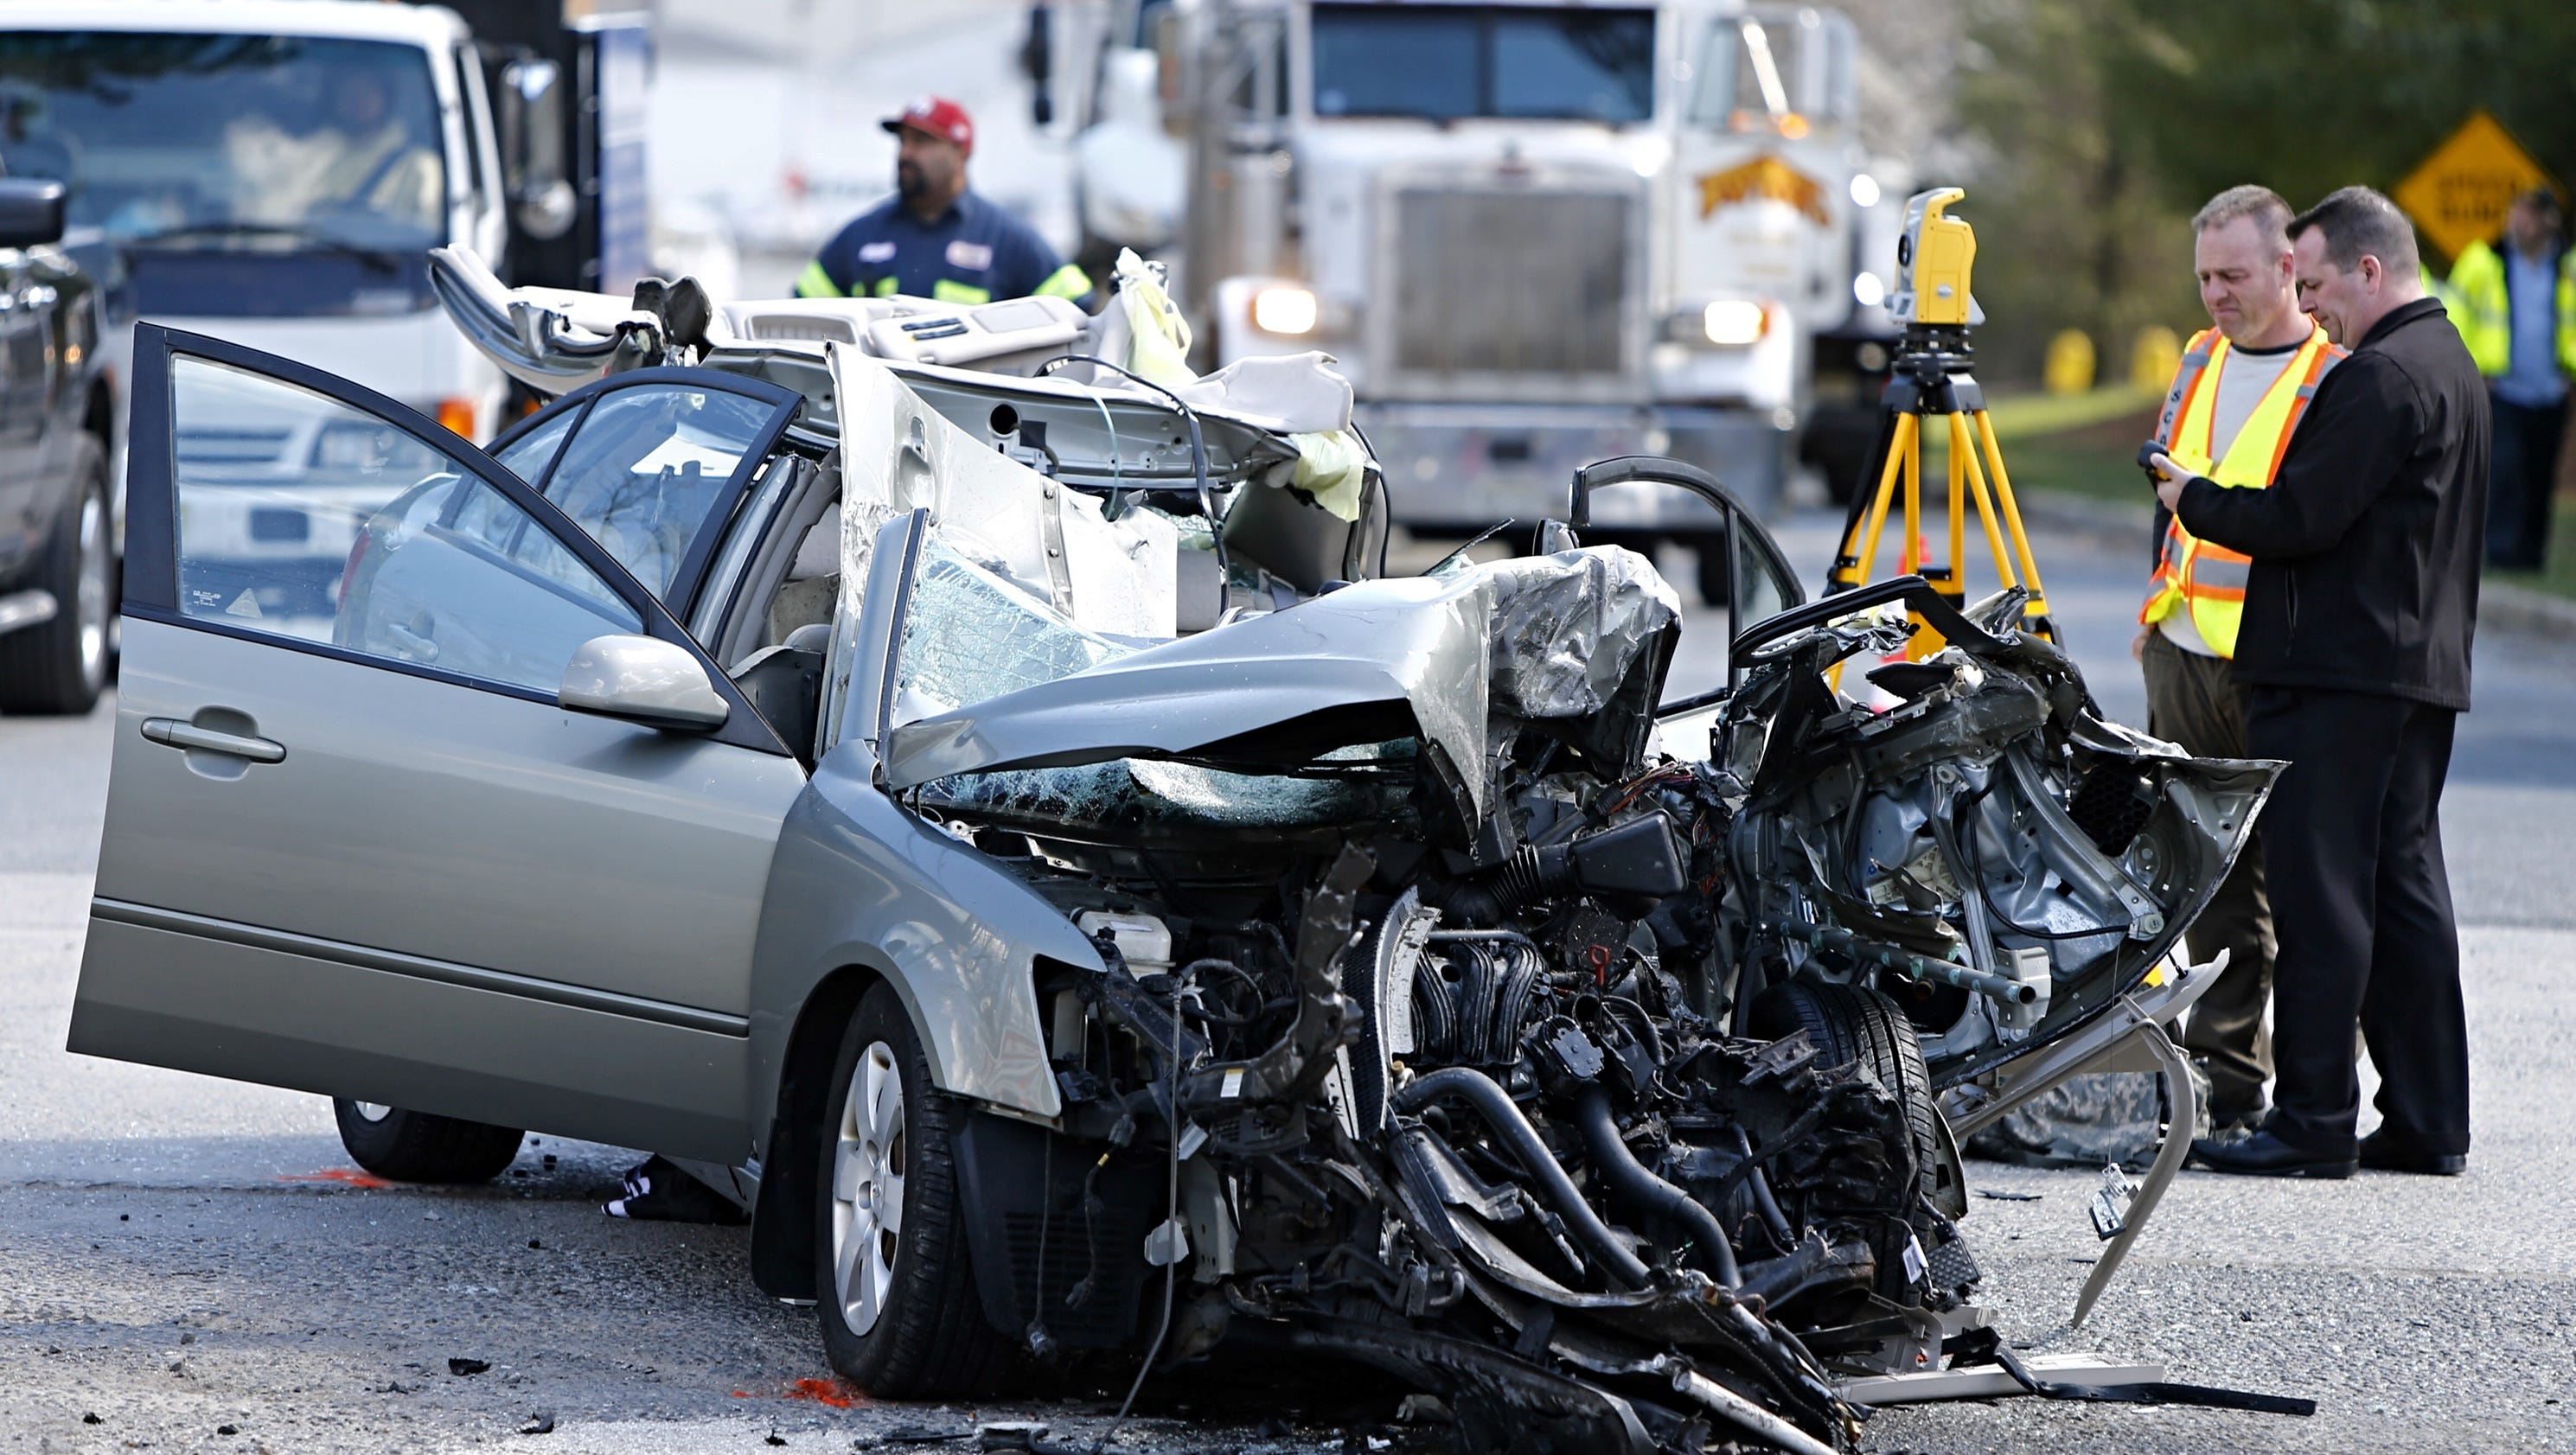 Serious accident on Shafto Road in Tinton Falls